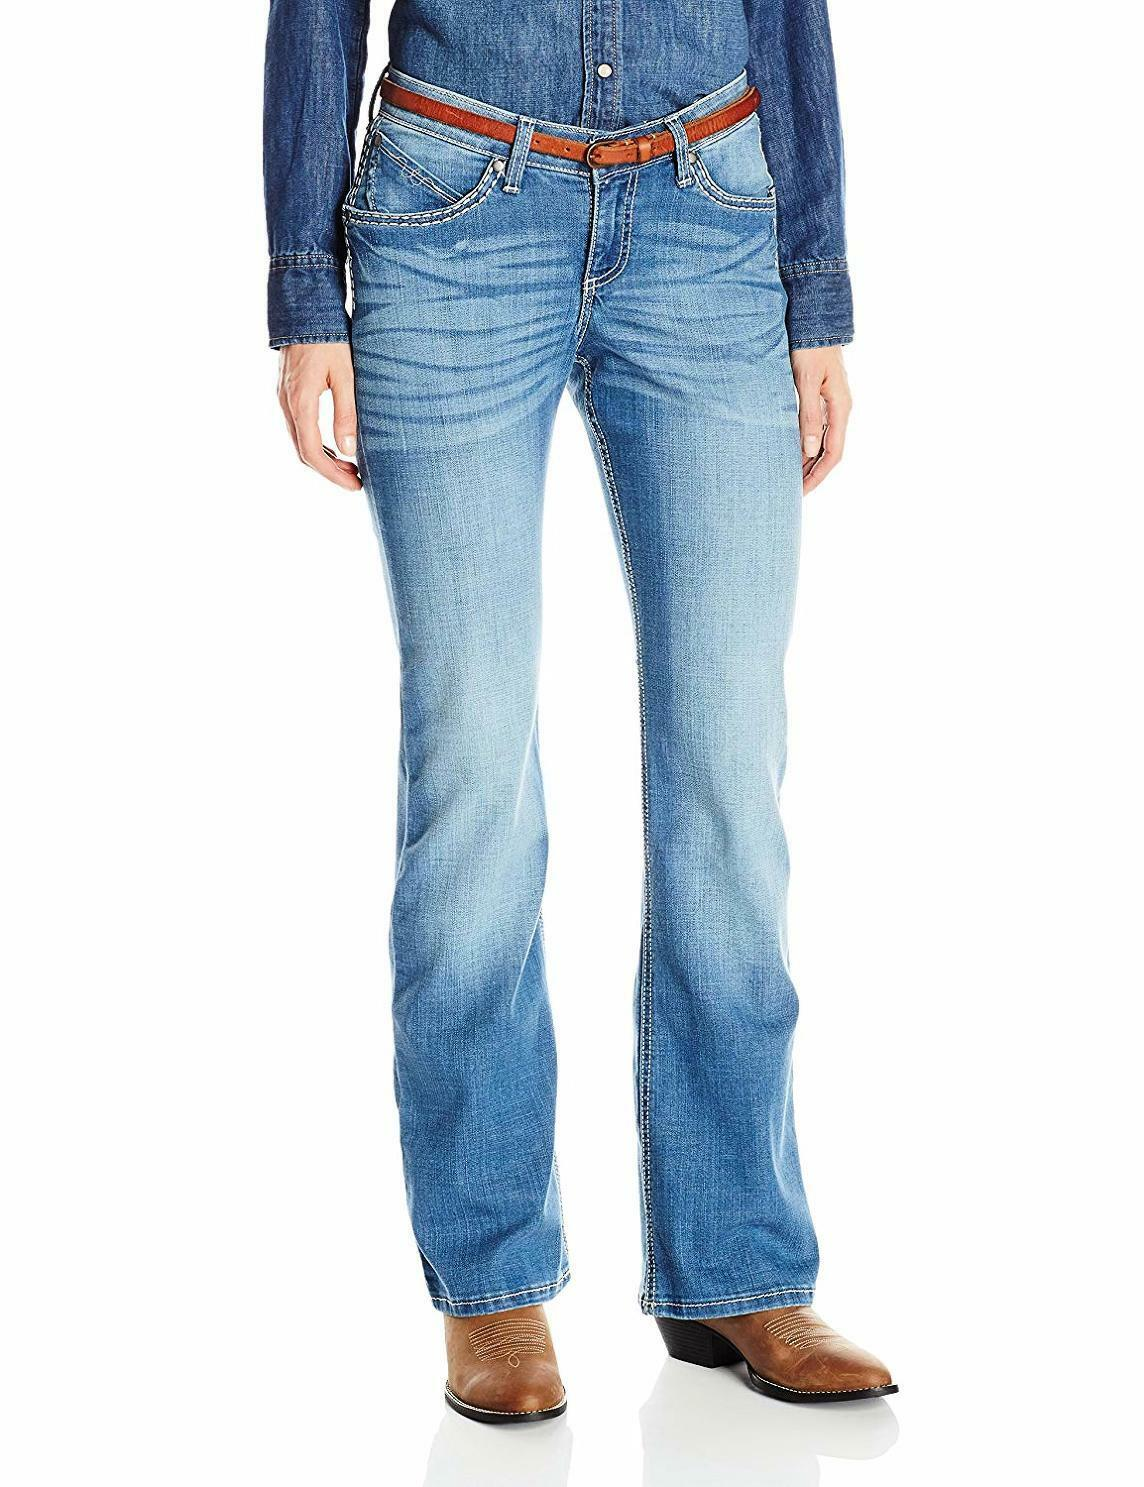 Femme Wrangler Ultimate Riding Shiloh Jean-Choisir Taille coul